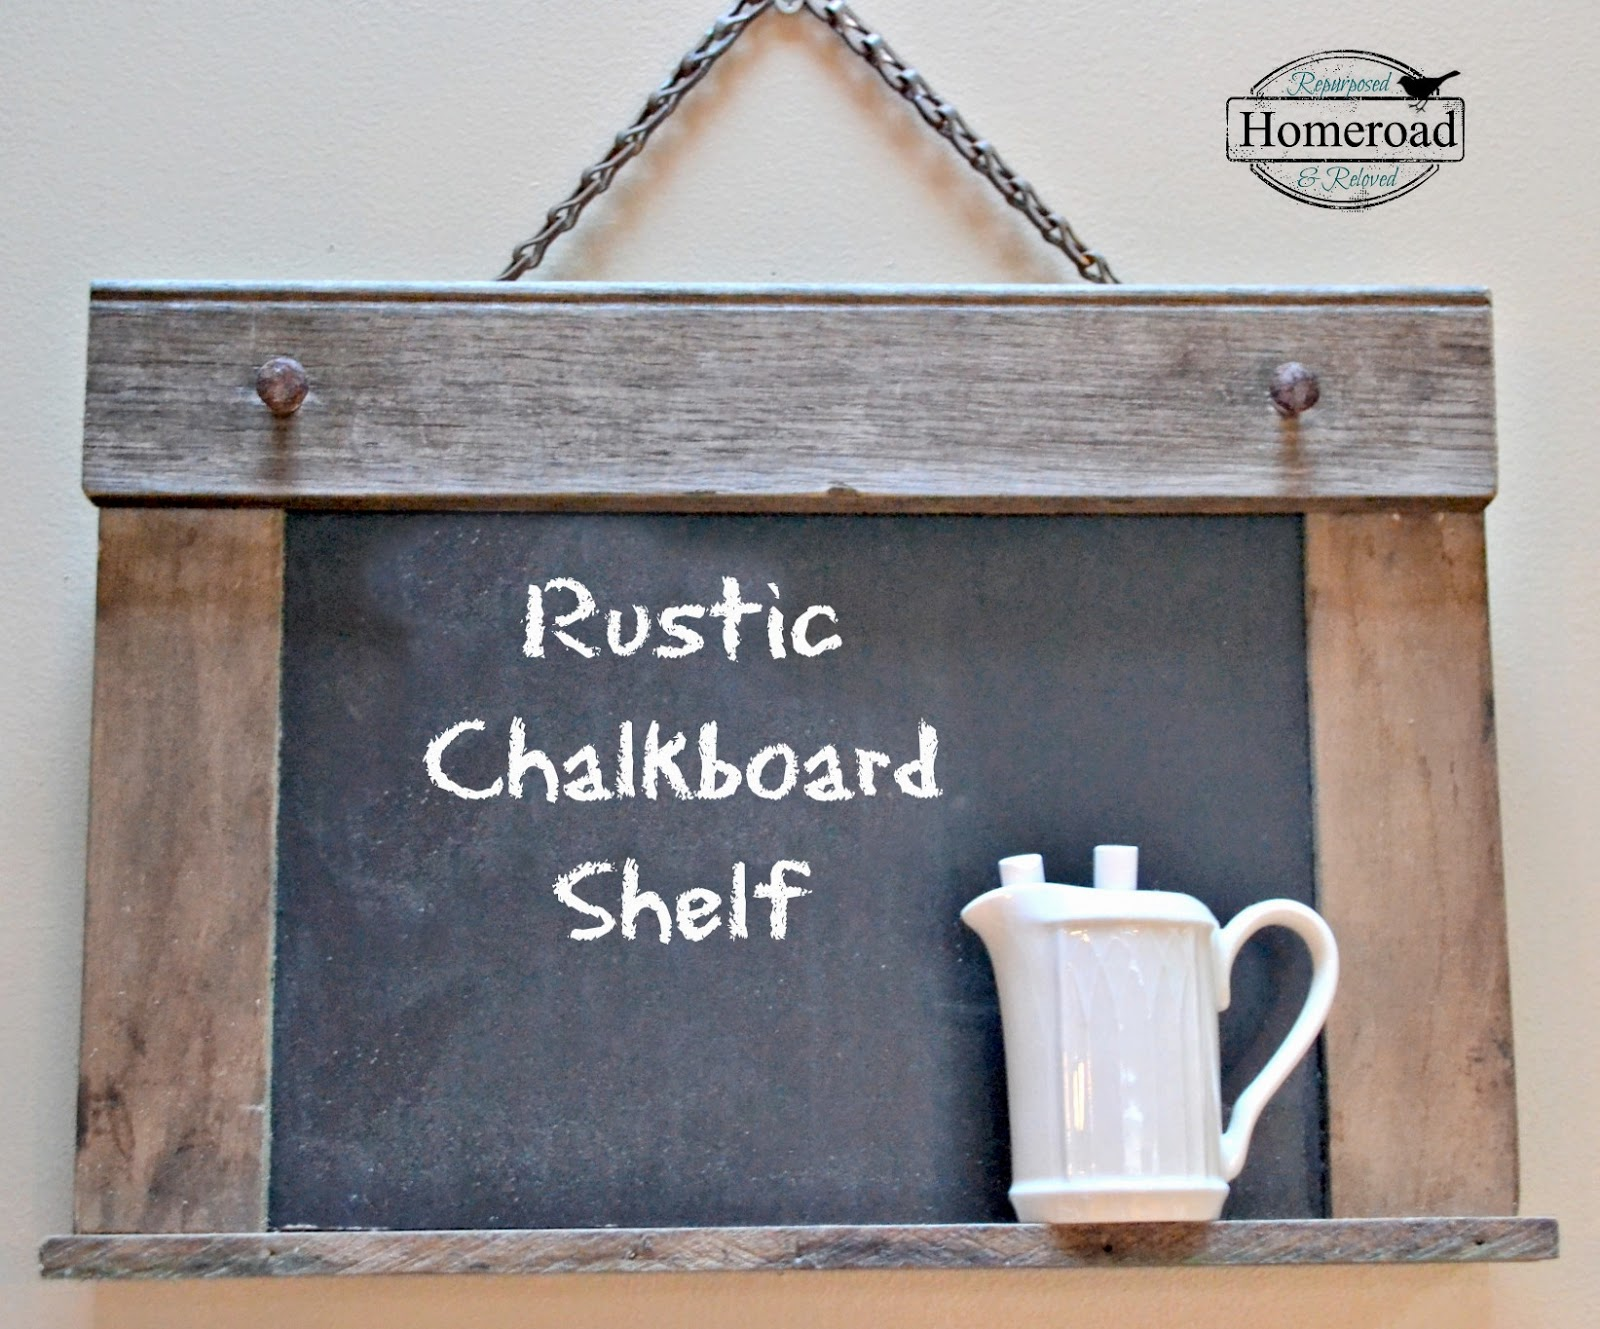 Rustic Chalkboard Shelf www.homeroad.net